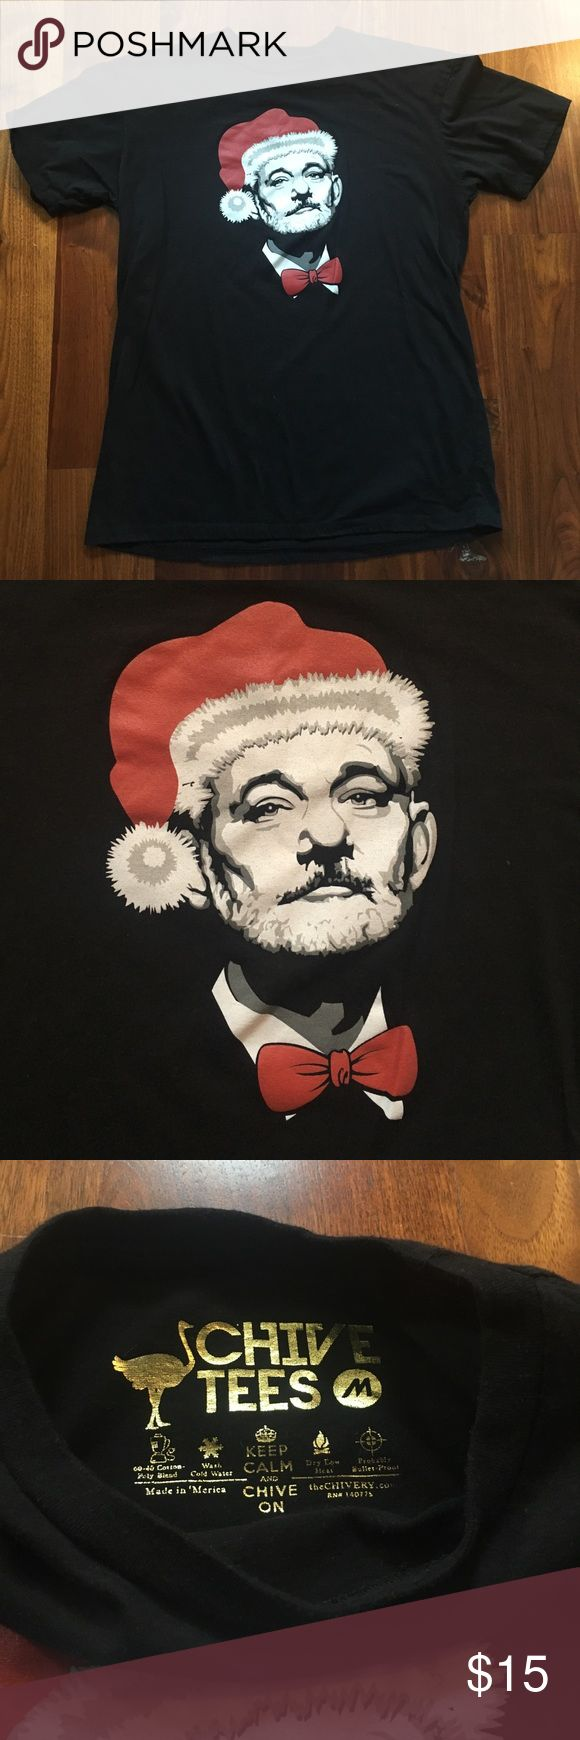 Men's The Chive Santa BFM Shirt Medium Men's The Chive Santa BFM Shirt Medium. Great for the holidays! EUC. From a non-smoking and pet-free home. The Chive Shirts Tees - Short Sleeve